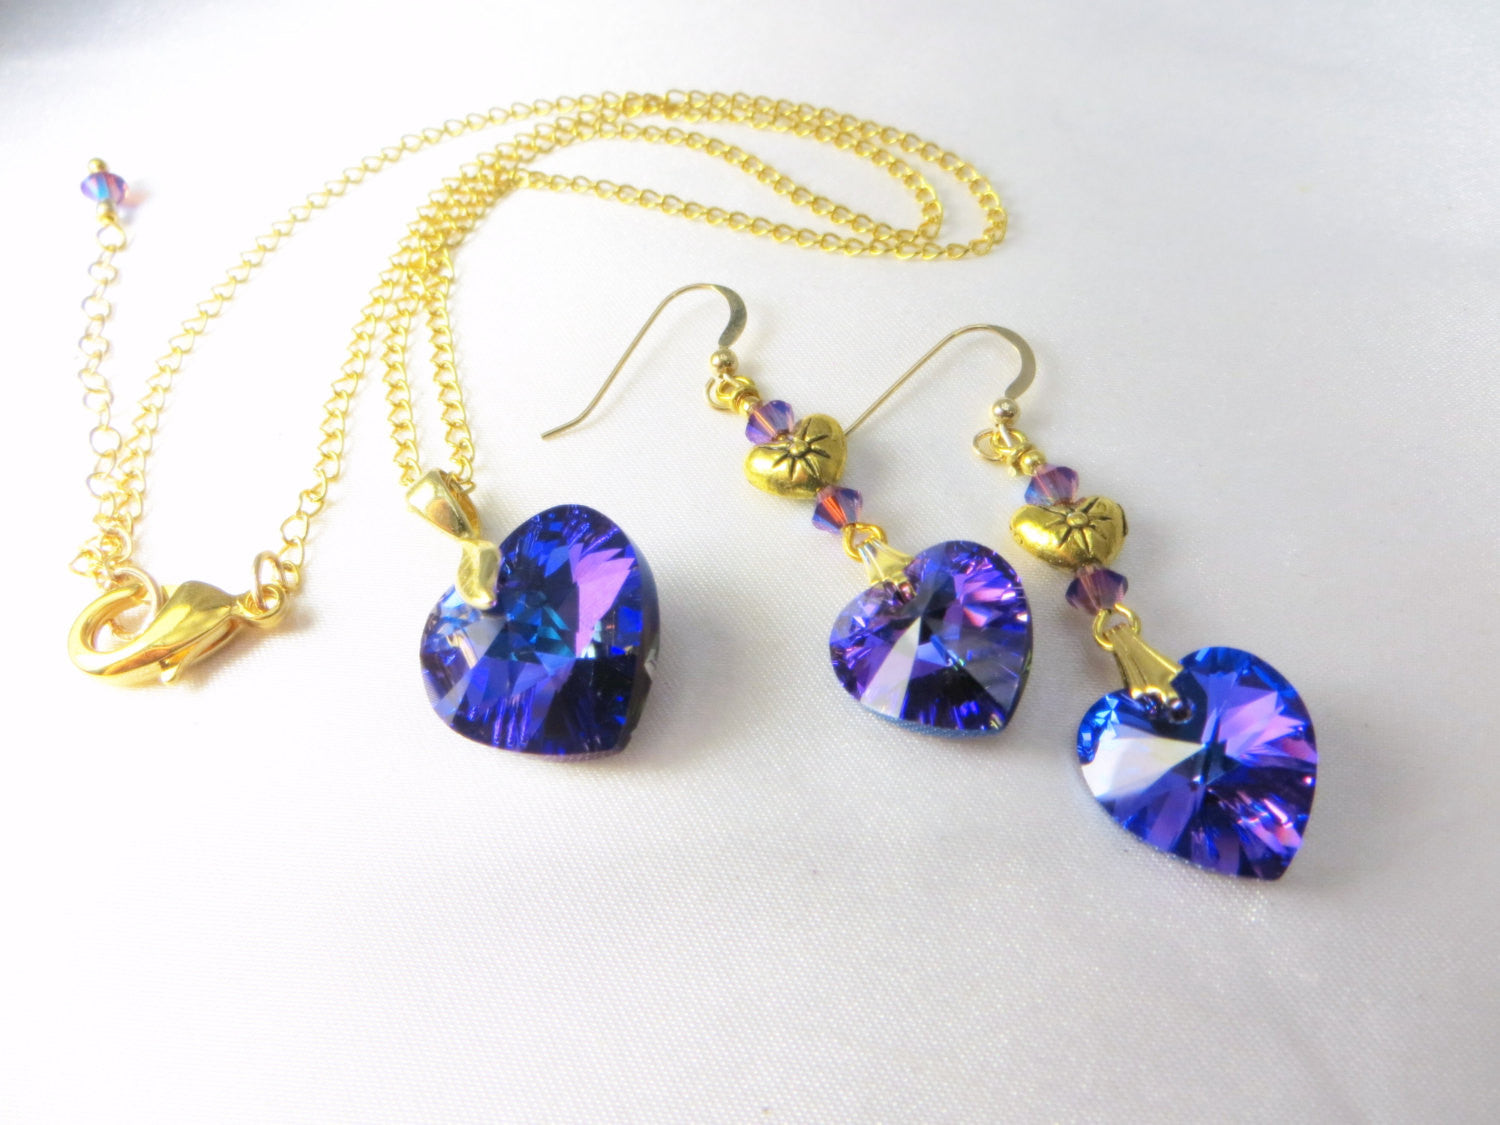 Swarovski Heart Necklace in Heliotrope Purple and Blue with 14k Gold Fill Chain - Odyssey Creations